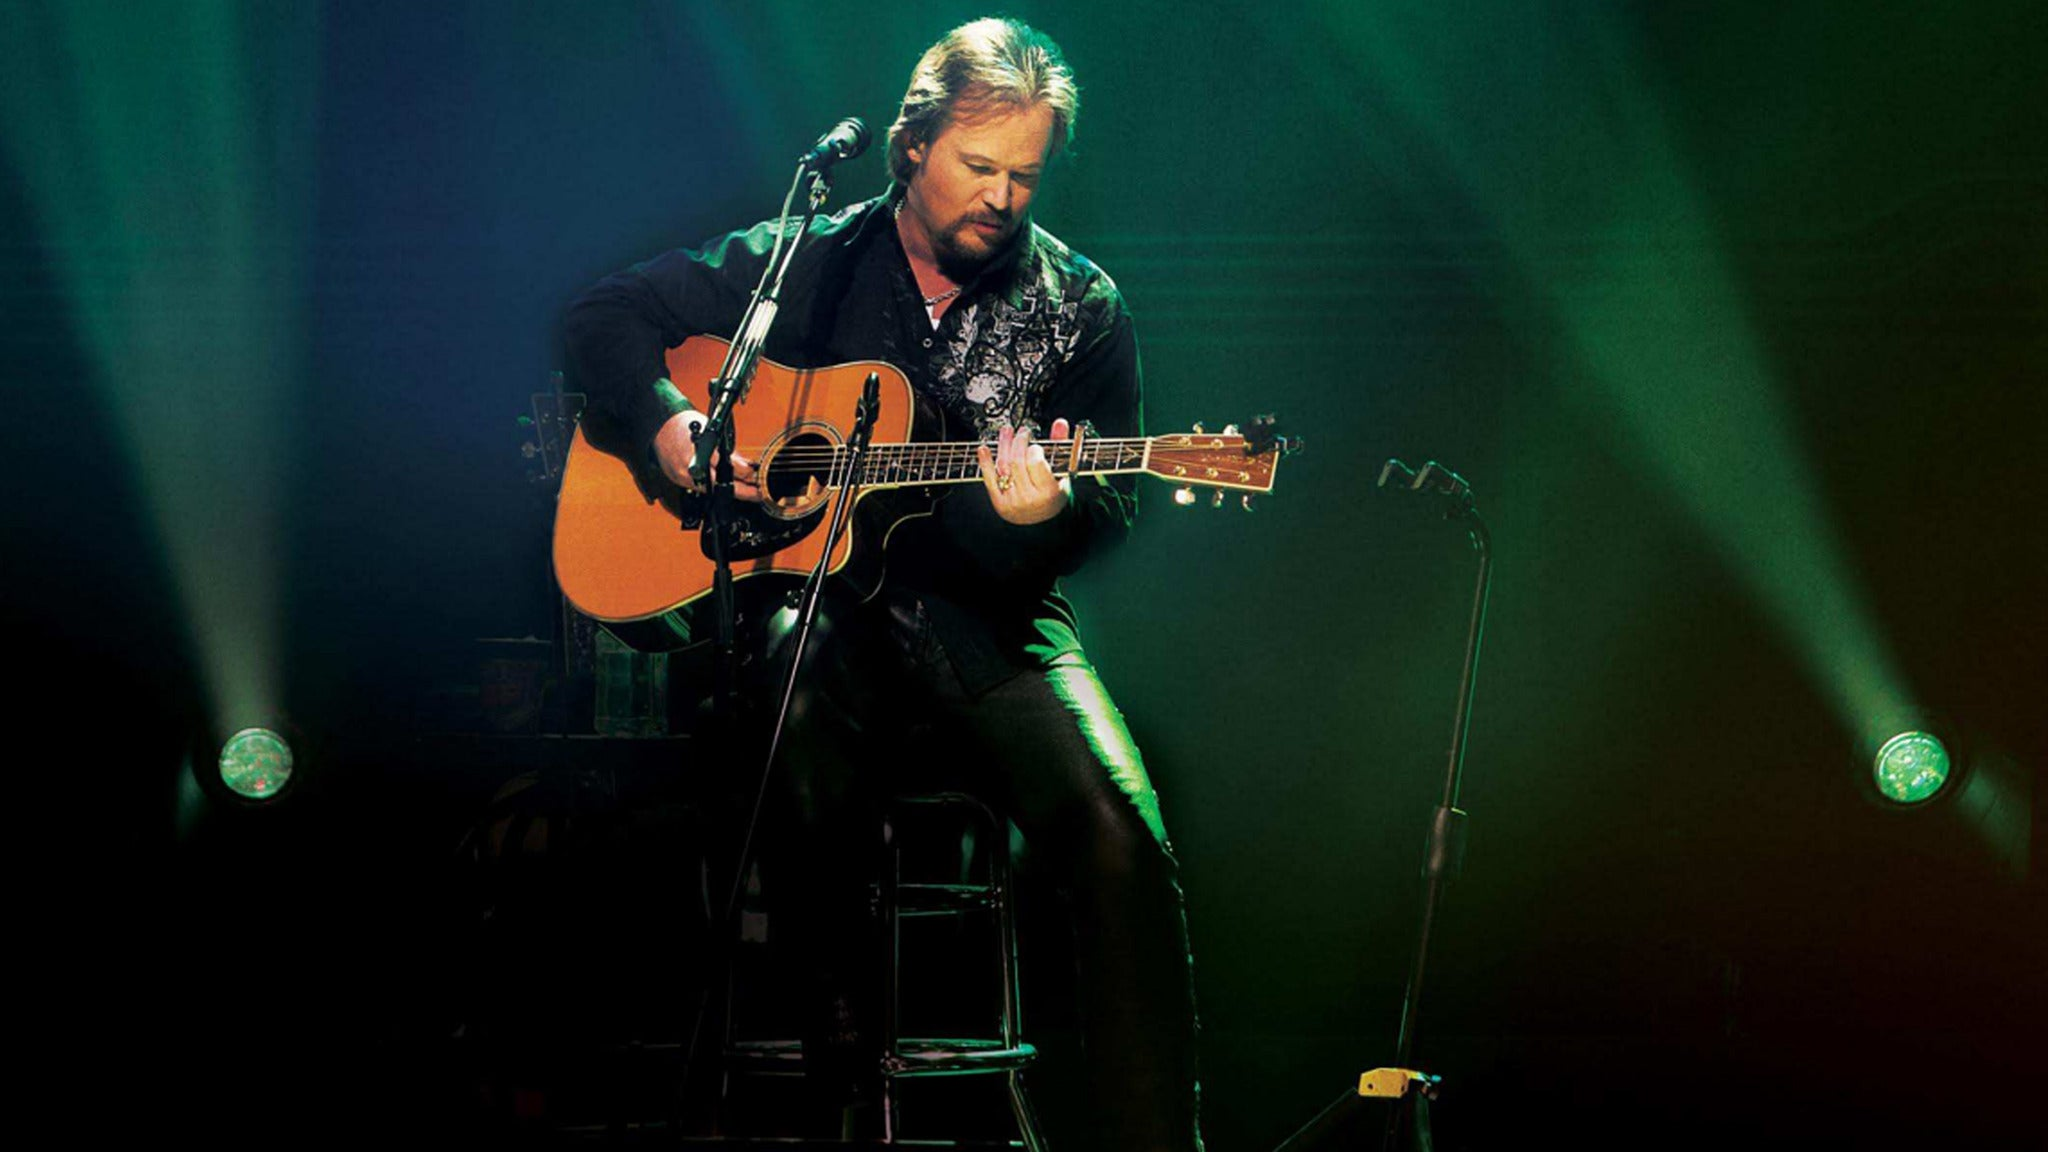 Travis Tritt at Macon City Auditorium